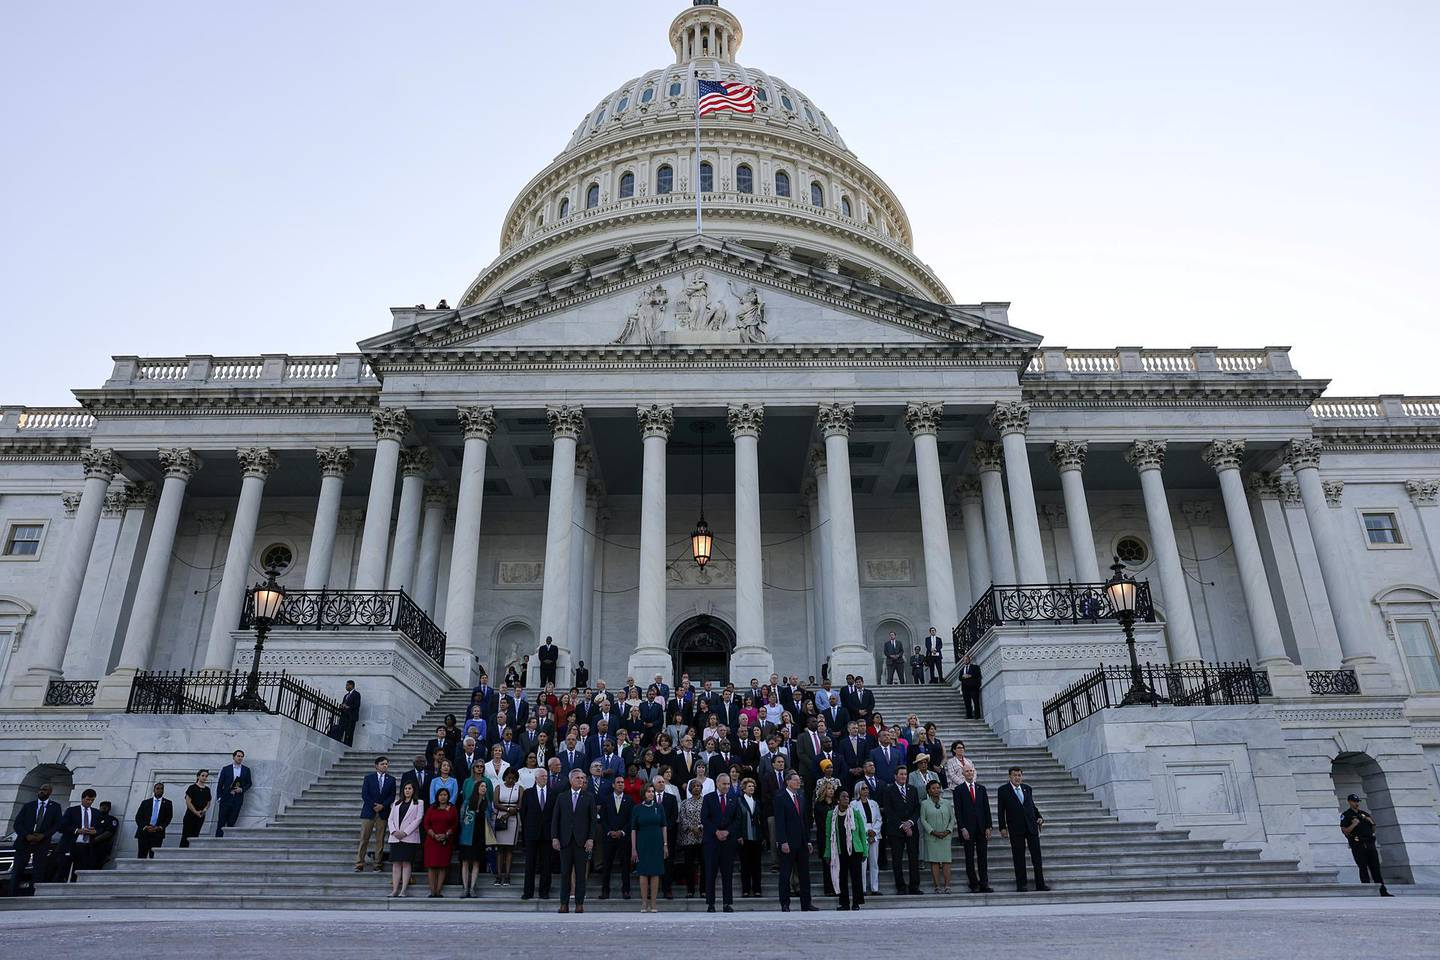 FILE PHOTO: Members of Congress observe a moment of silence for the 600,000 American lives lost to the coronavirus disease (COVID-19), outside the U.S. Capitol in Washington, U.S., June 14, 2021. REUTERS/Evelyn Hockstein/File Photo